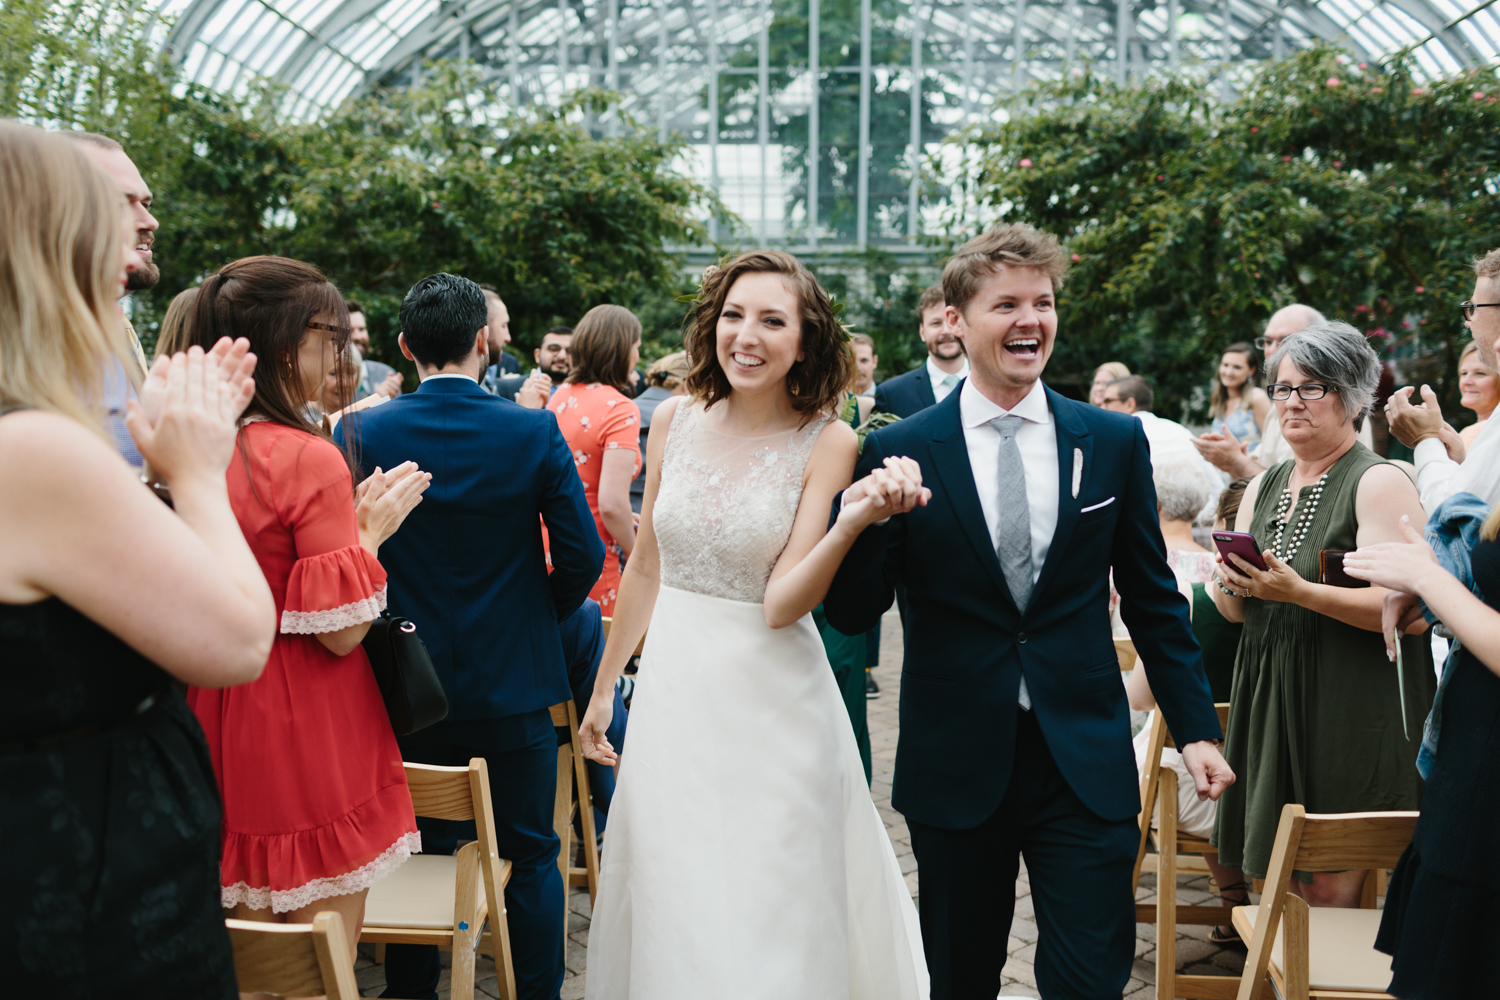 Chicago Garfield Park Conservatory Wedding by Northern Michigan Photographer Mae Stier-067.jpg